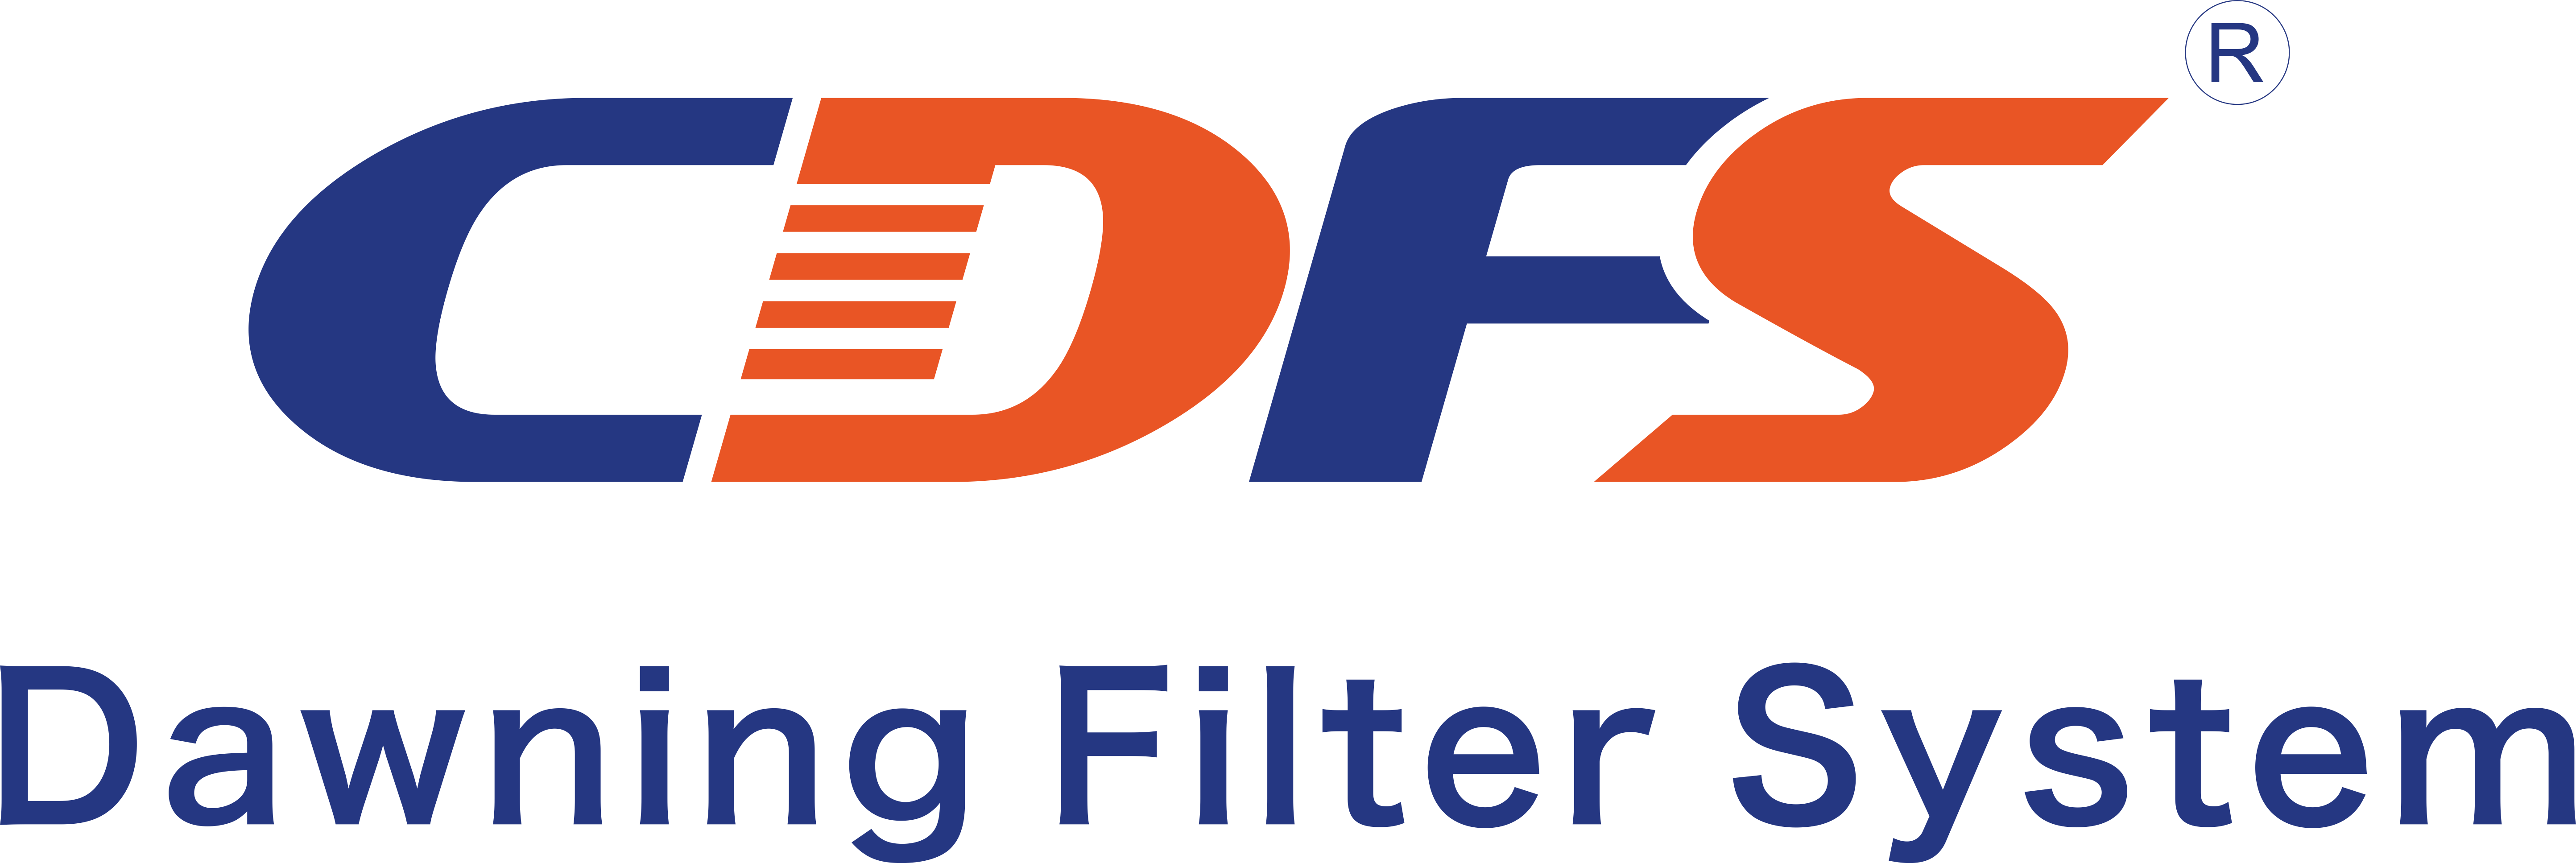 Hunan Dawning Filter System Technology Co., Ltd